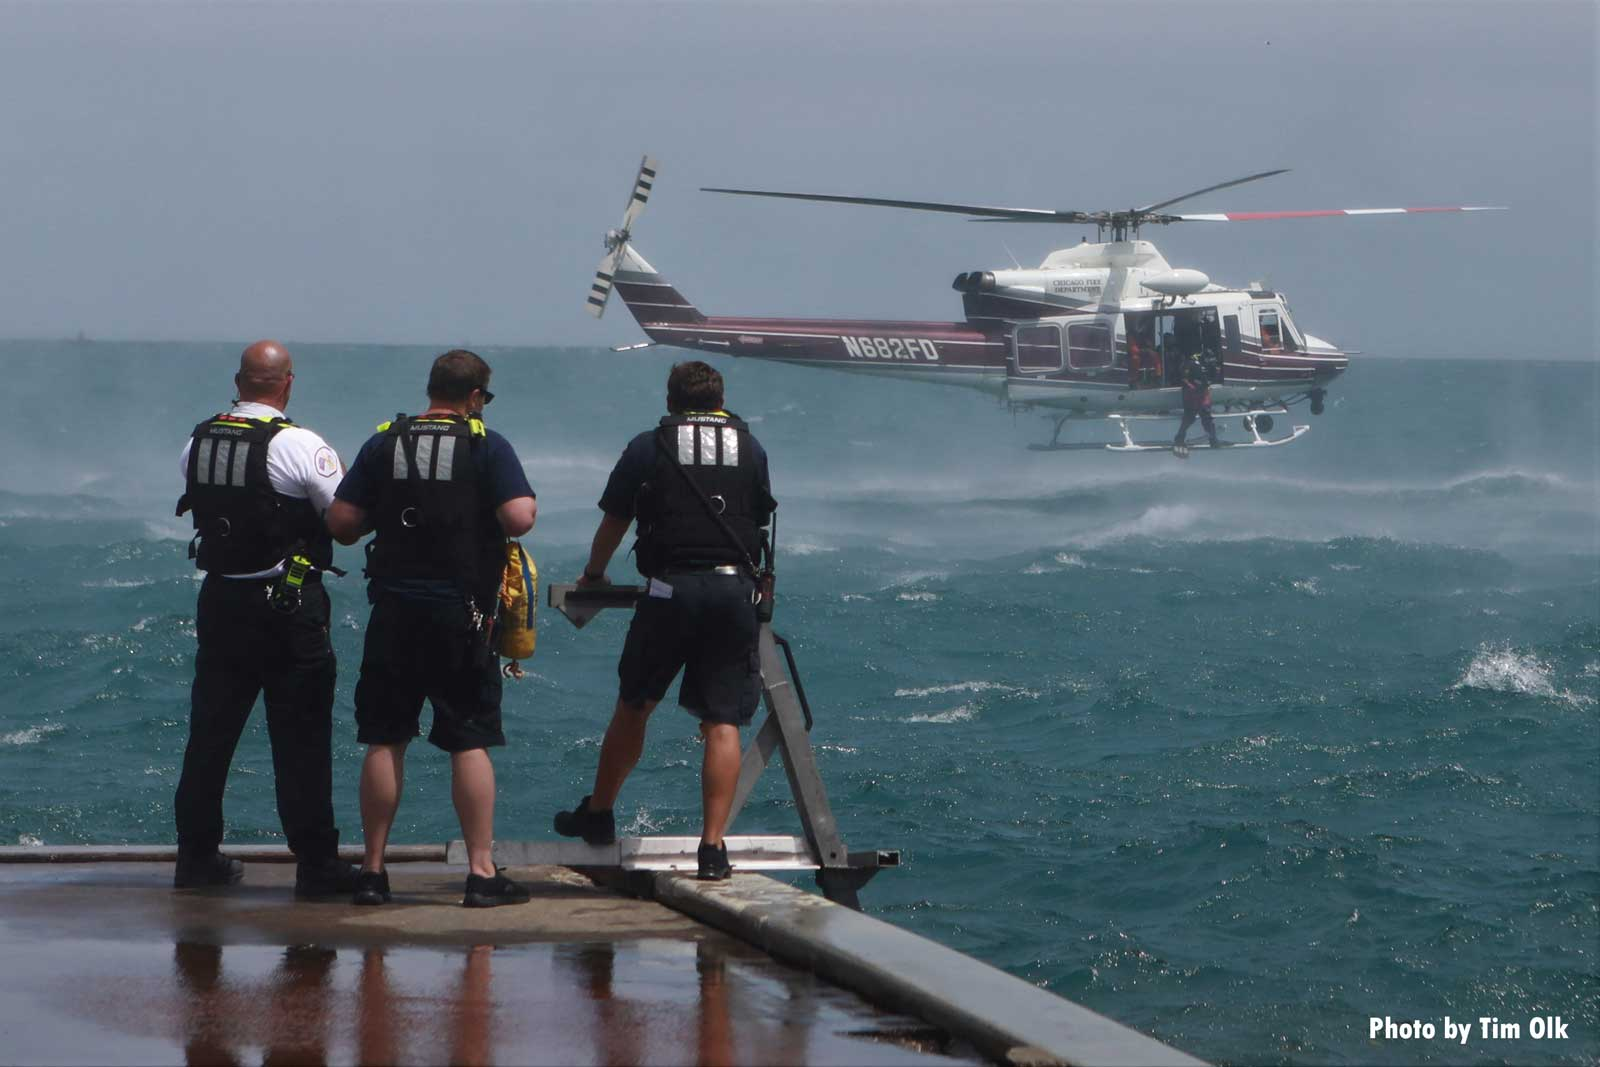 Chicago fire officials with helicopter in background